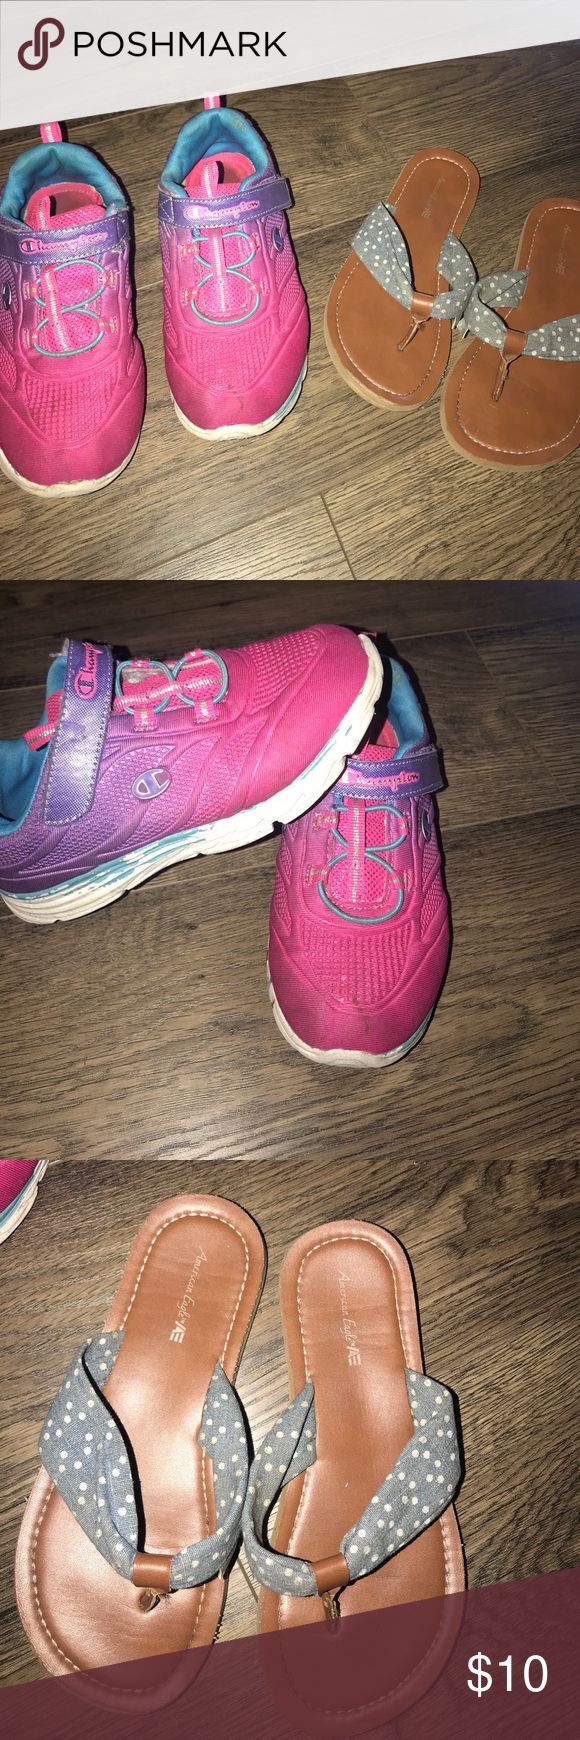 Girls Shoe Bundle Pink Rainbow ones are a 12 1/2. They rainbow ones are in great condition the blue only peeled off from being washed. Sandals are a size 13, great condition with a foam sole. Both from Payless shoes Champion Shoes